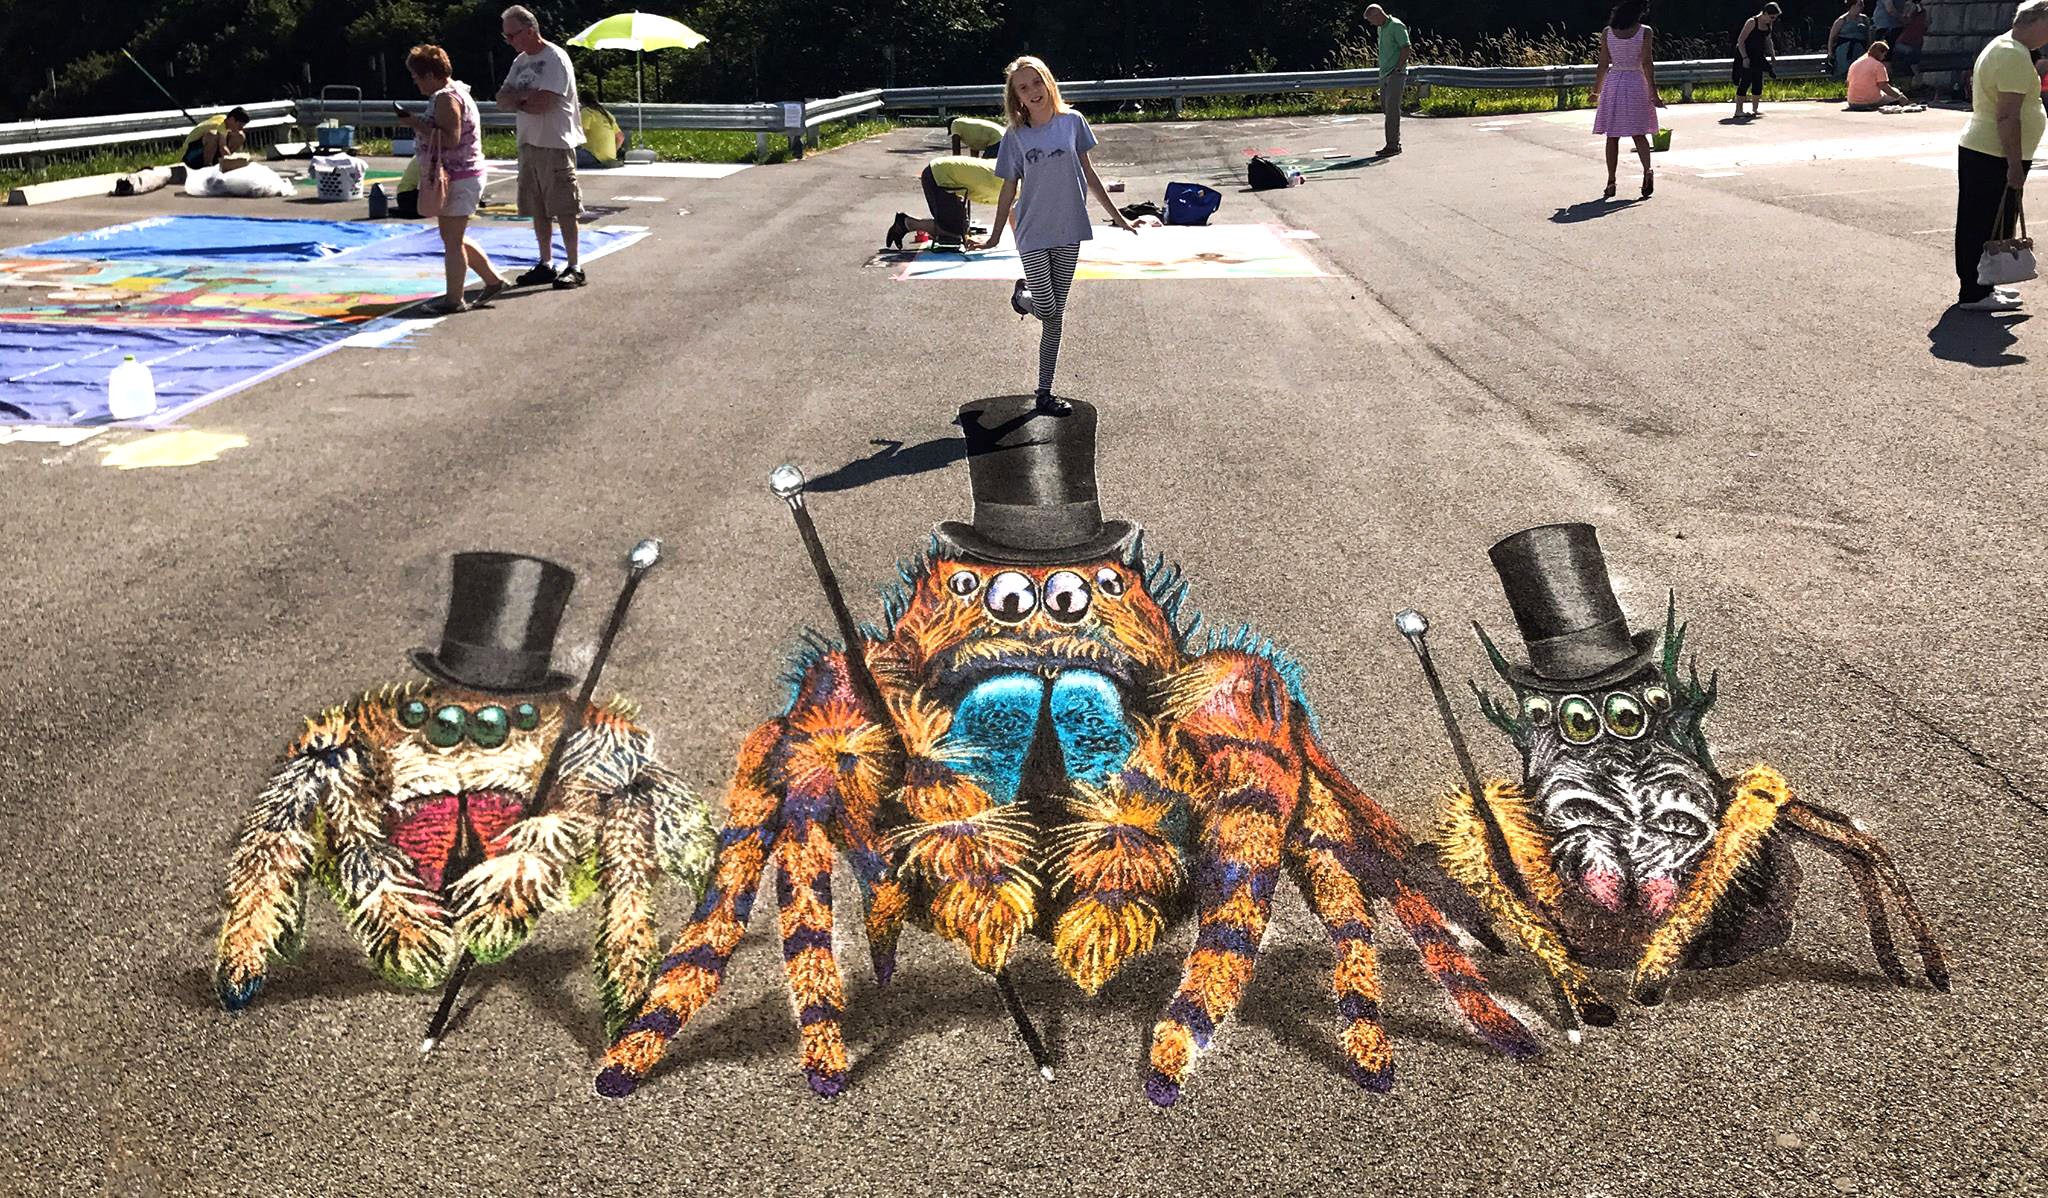 2017 Sweet Chalk Festival, Lockport, NY